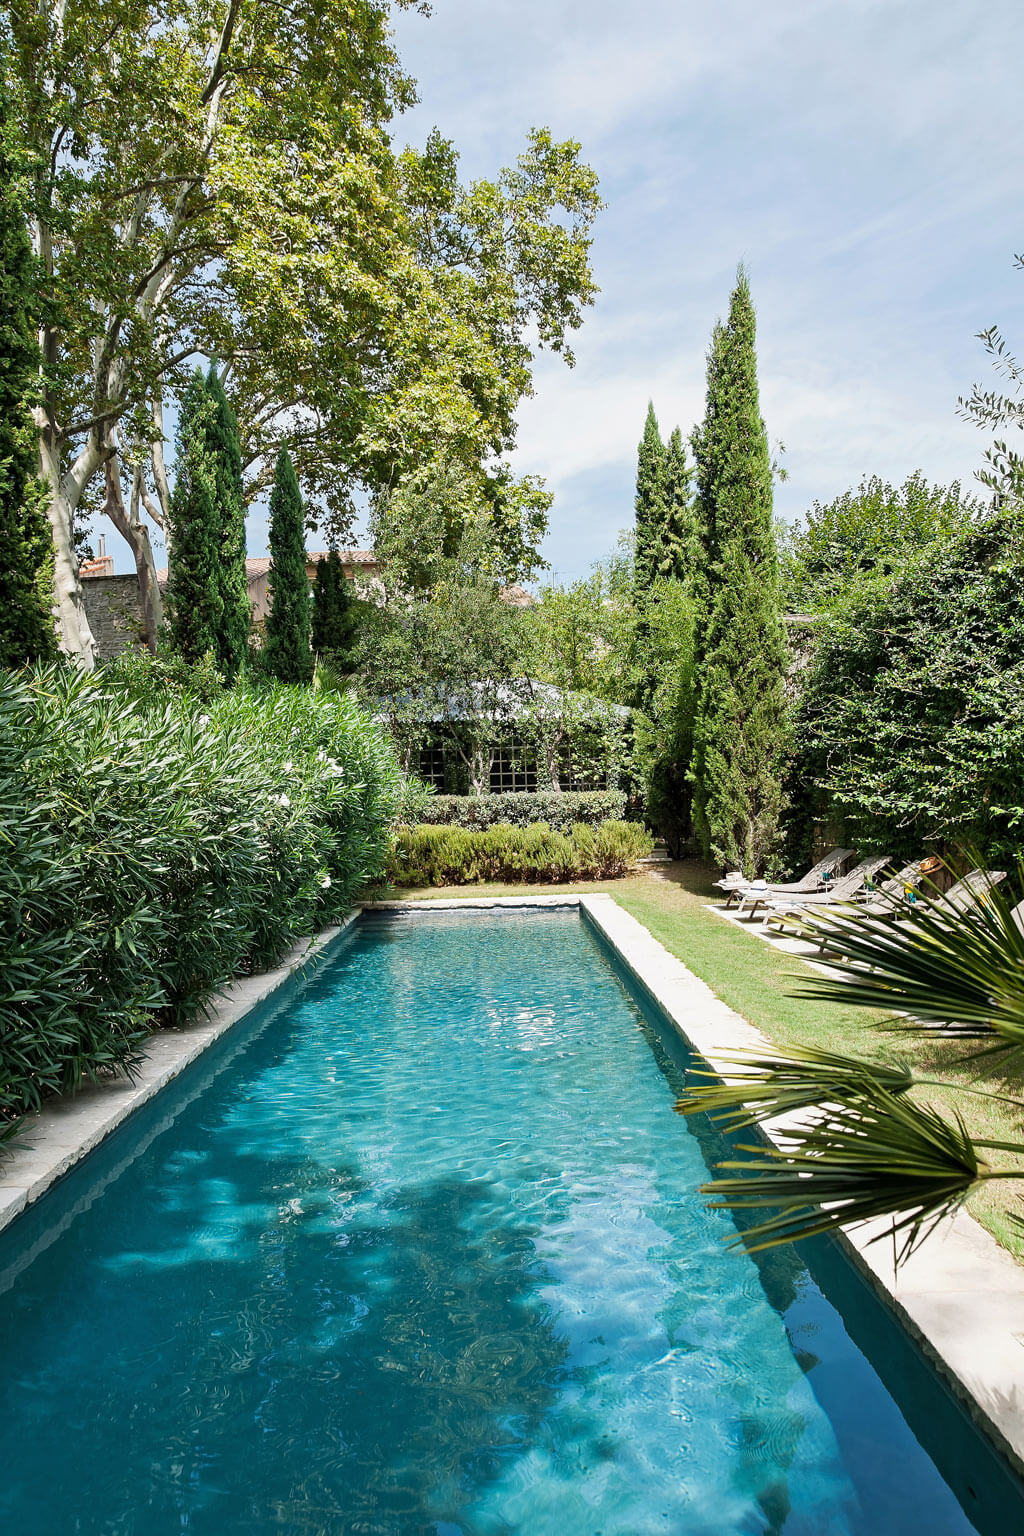 Natural, long, and narrow pool. Beautiful French country garden inspiration from a luxurious property in the South of France. Breathtaking 19th century restored French chateau with largest private garden in Avignon. Avignon Hôtel Particulier. Photo: Haven In.